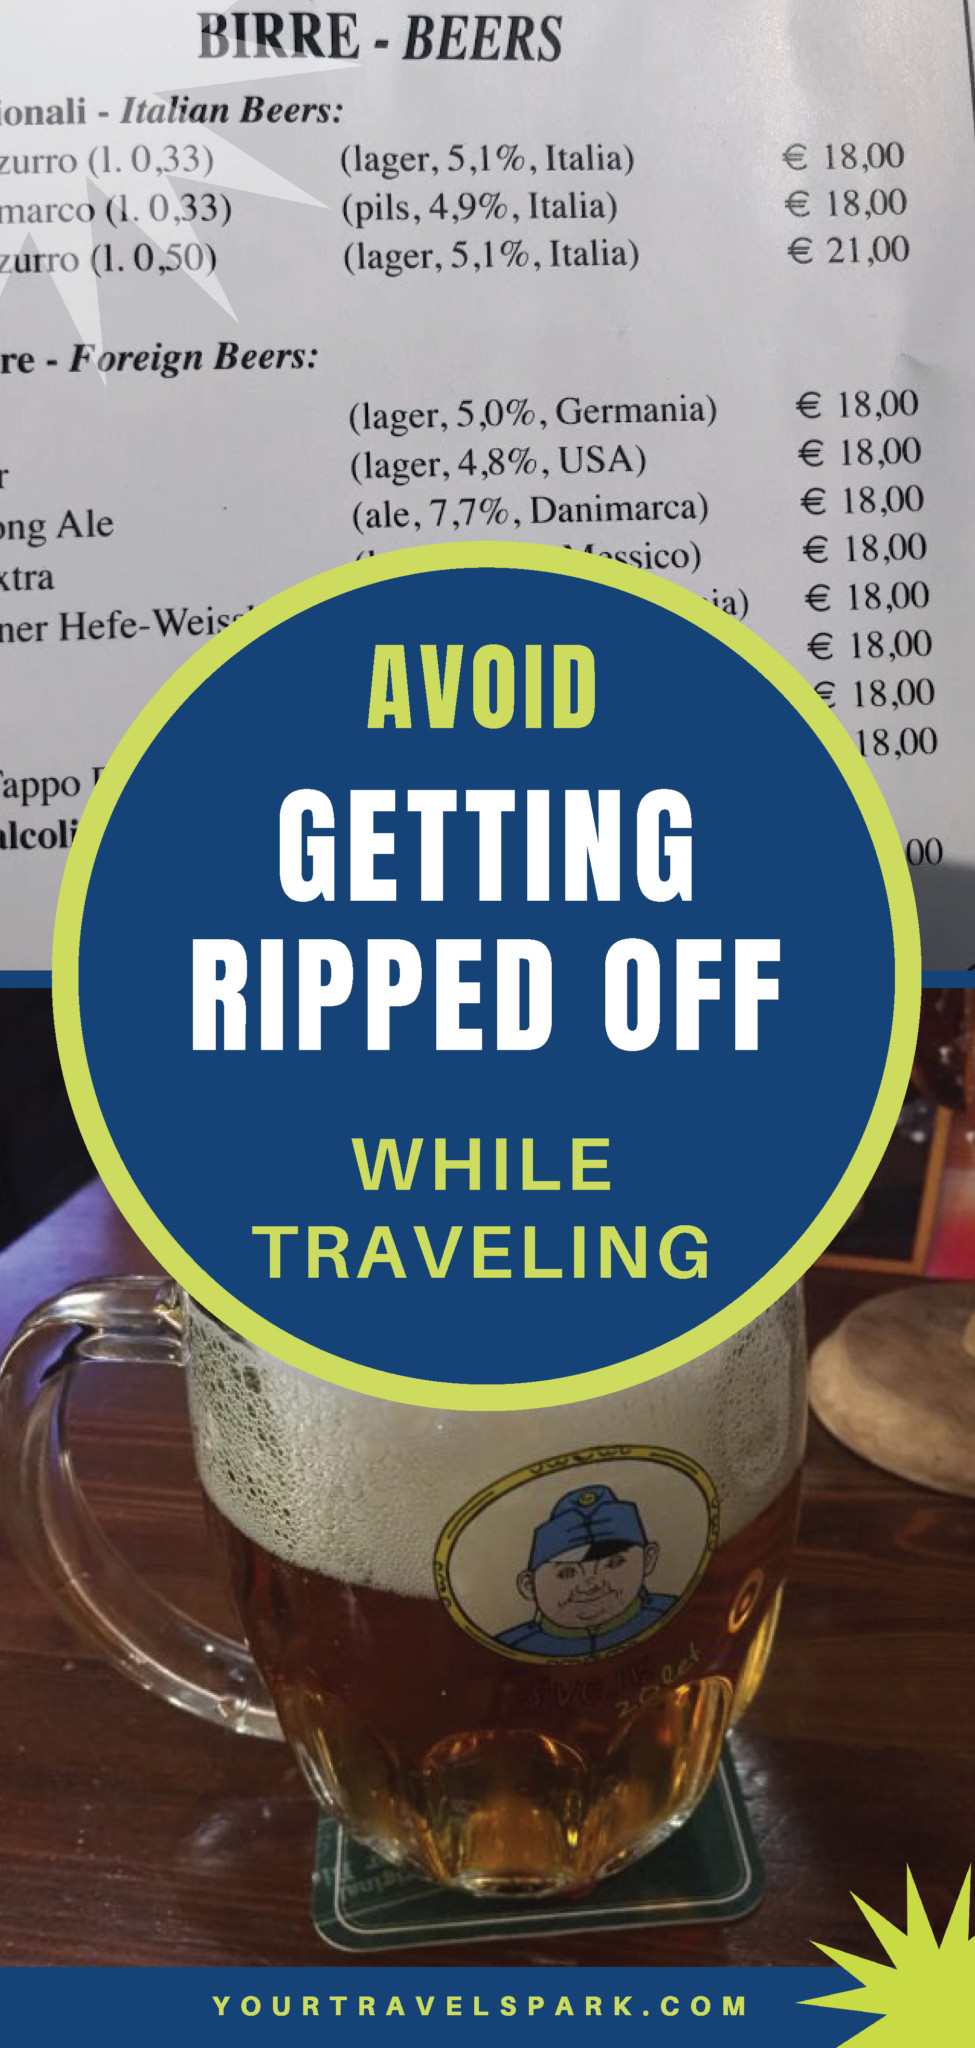 Being in a foreign country can be a stressful time - but here are our best tips to avoid getting taken advantage of while traveling. #traveling #travelfears #rippedoff #travelscares #travelstress